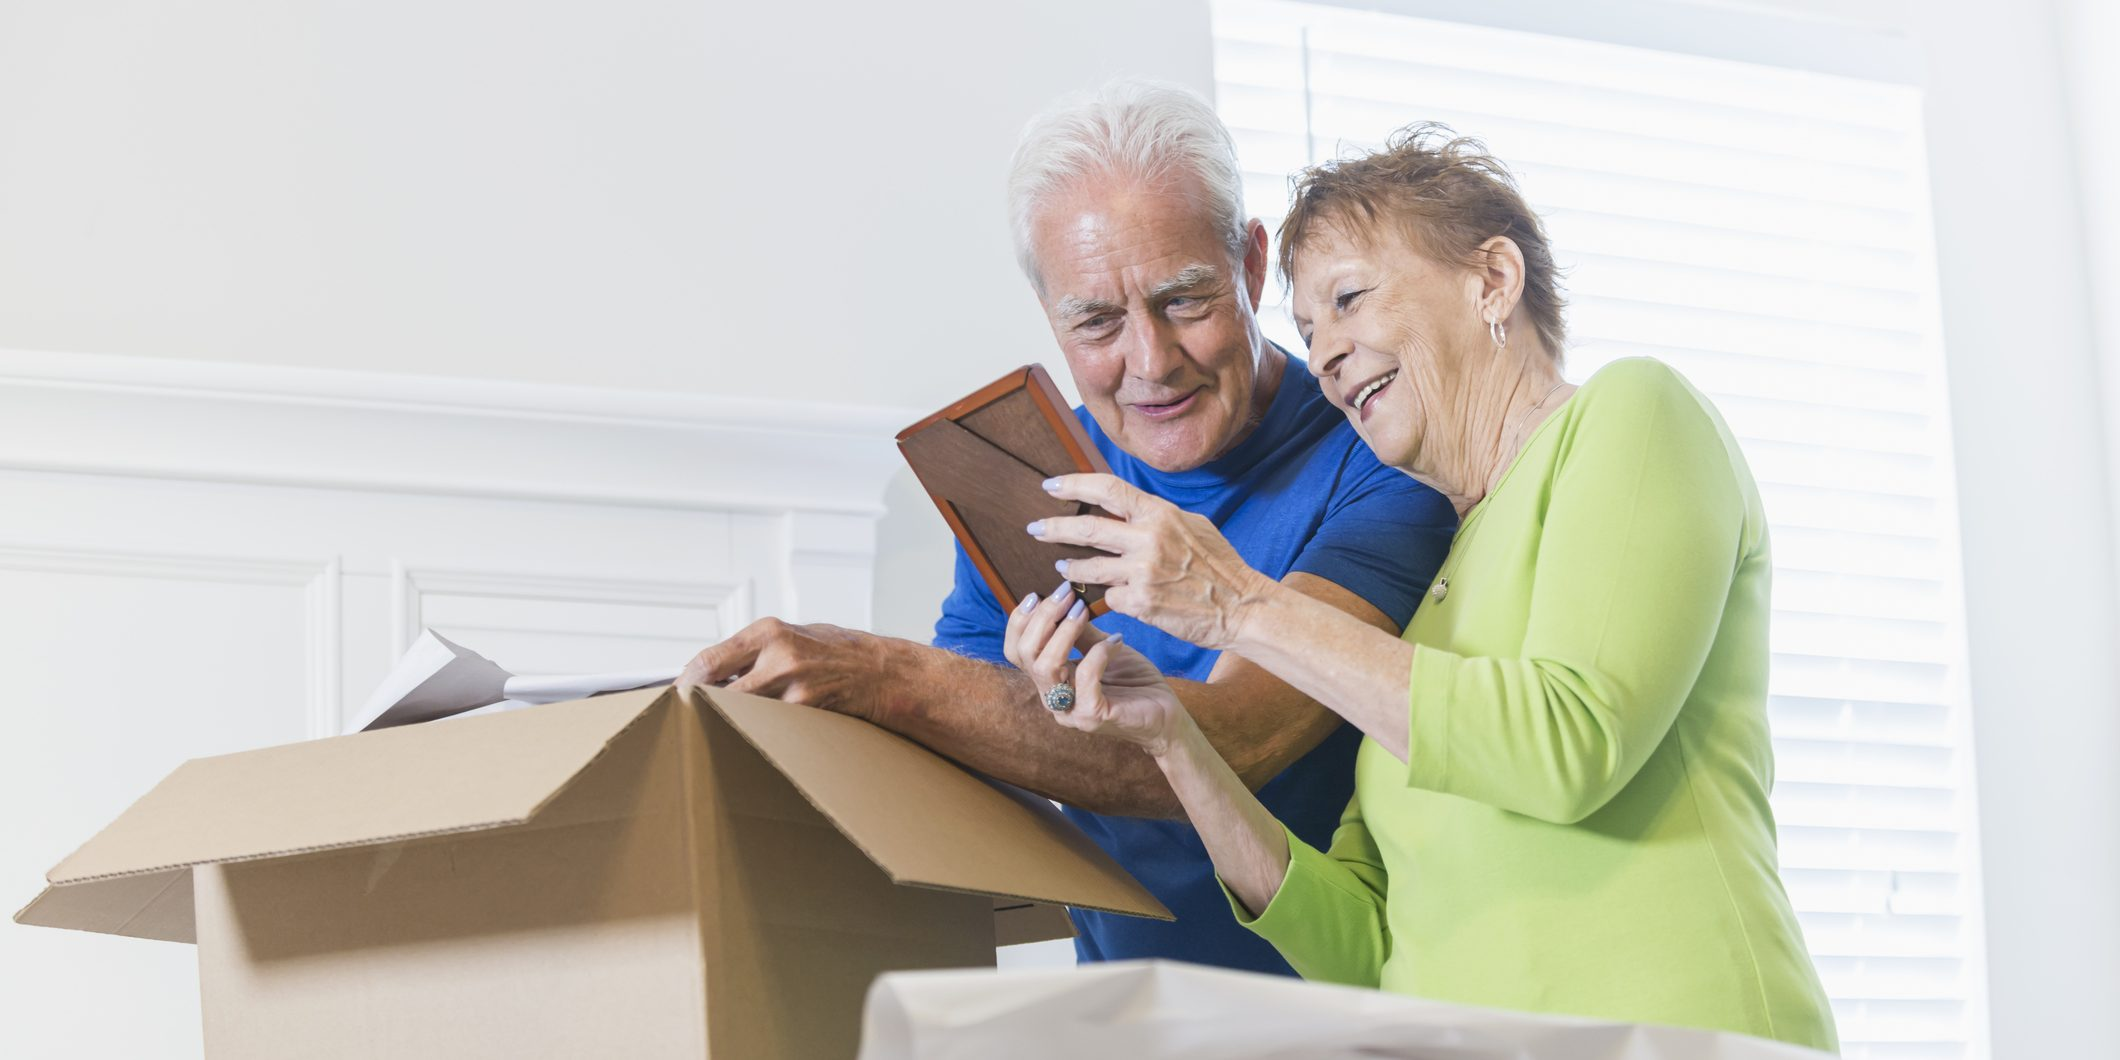 Half of over-55s are open to downsizing – if only they could find homes that suit them